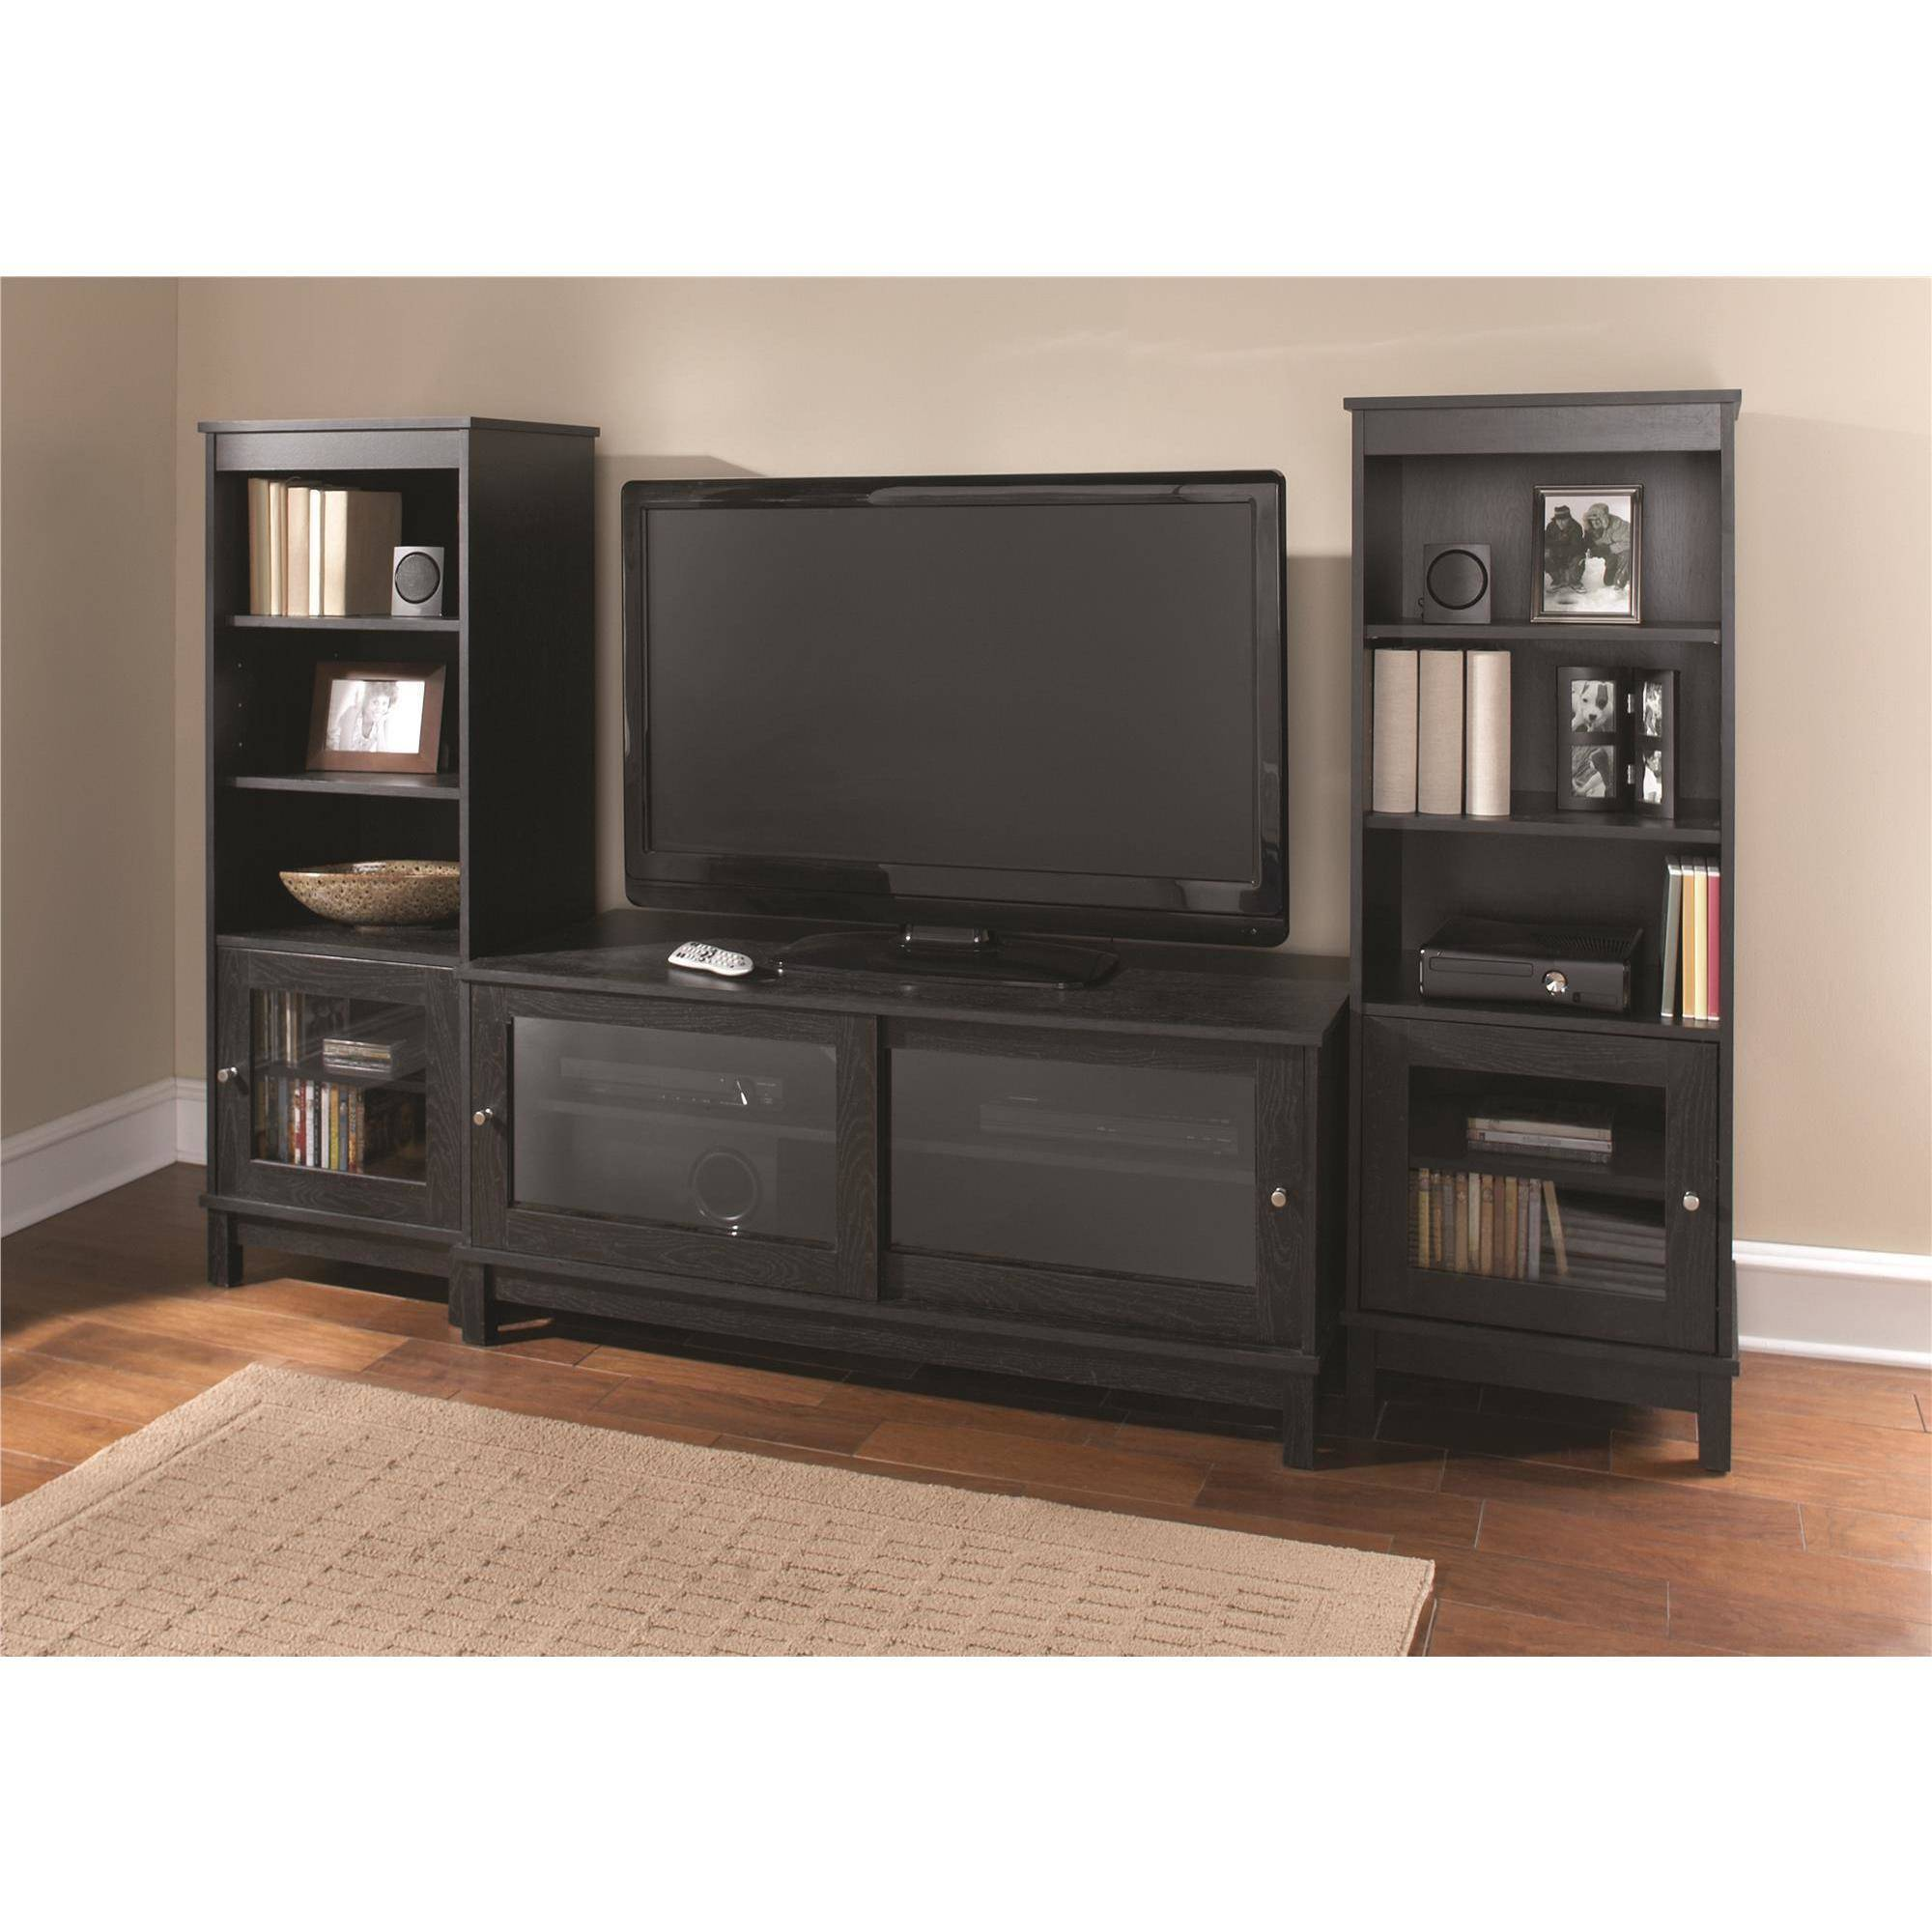 "Black Entertainment Center Wall Unit mainstays entertainment center bundle for tvs up to 55"", multiple"